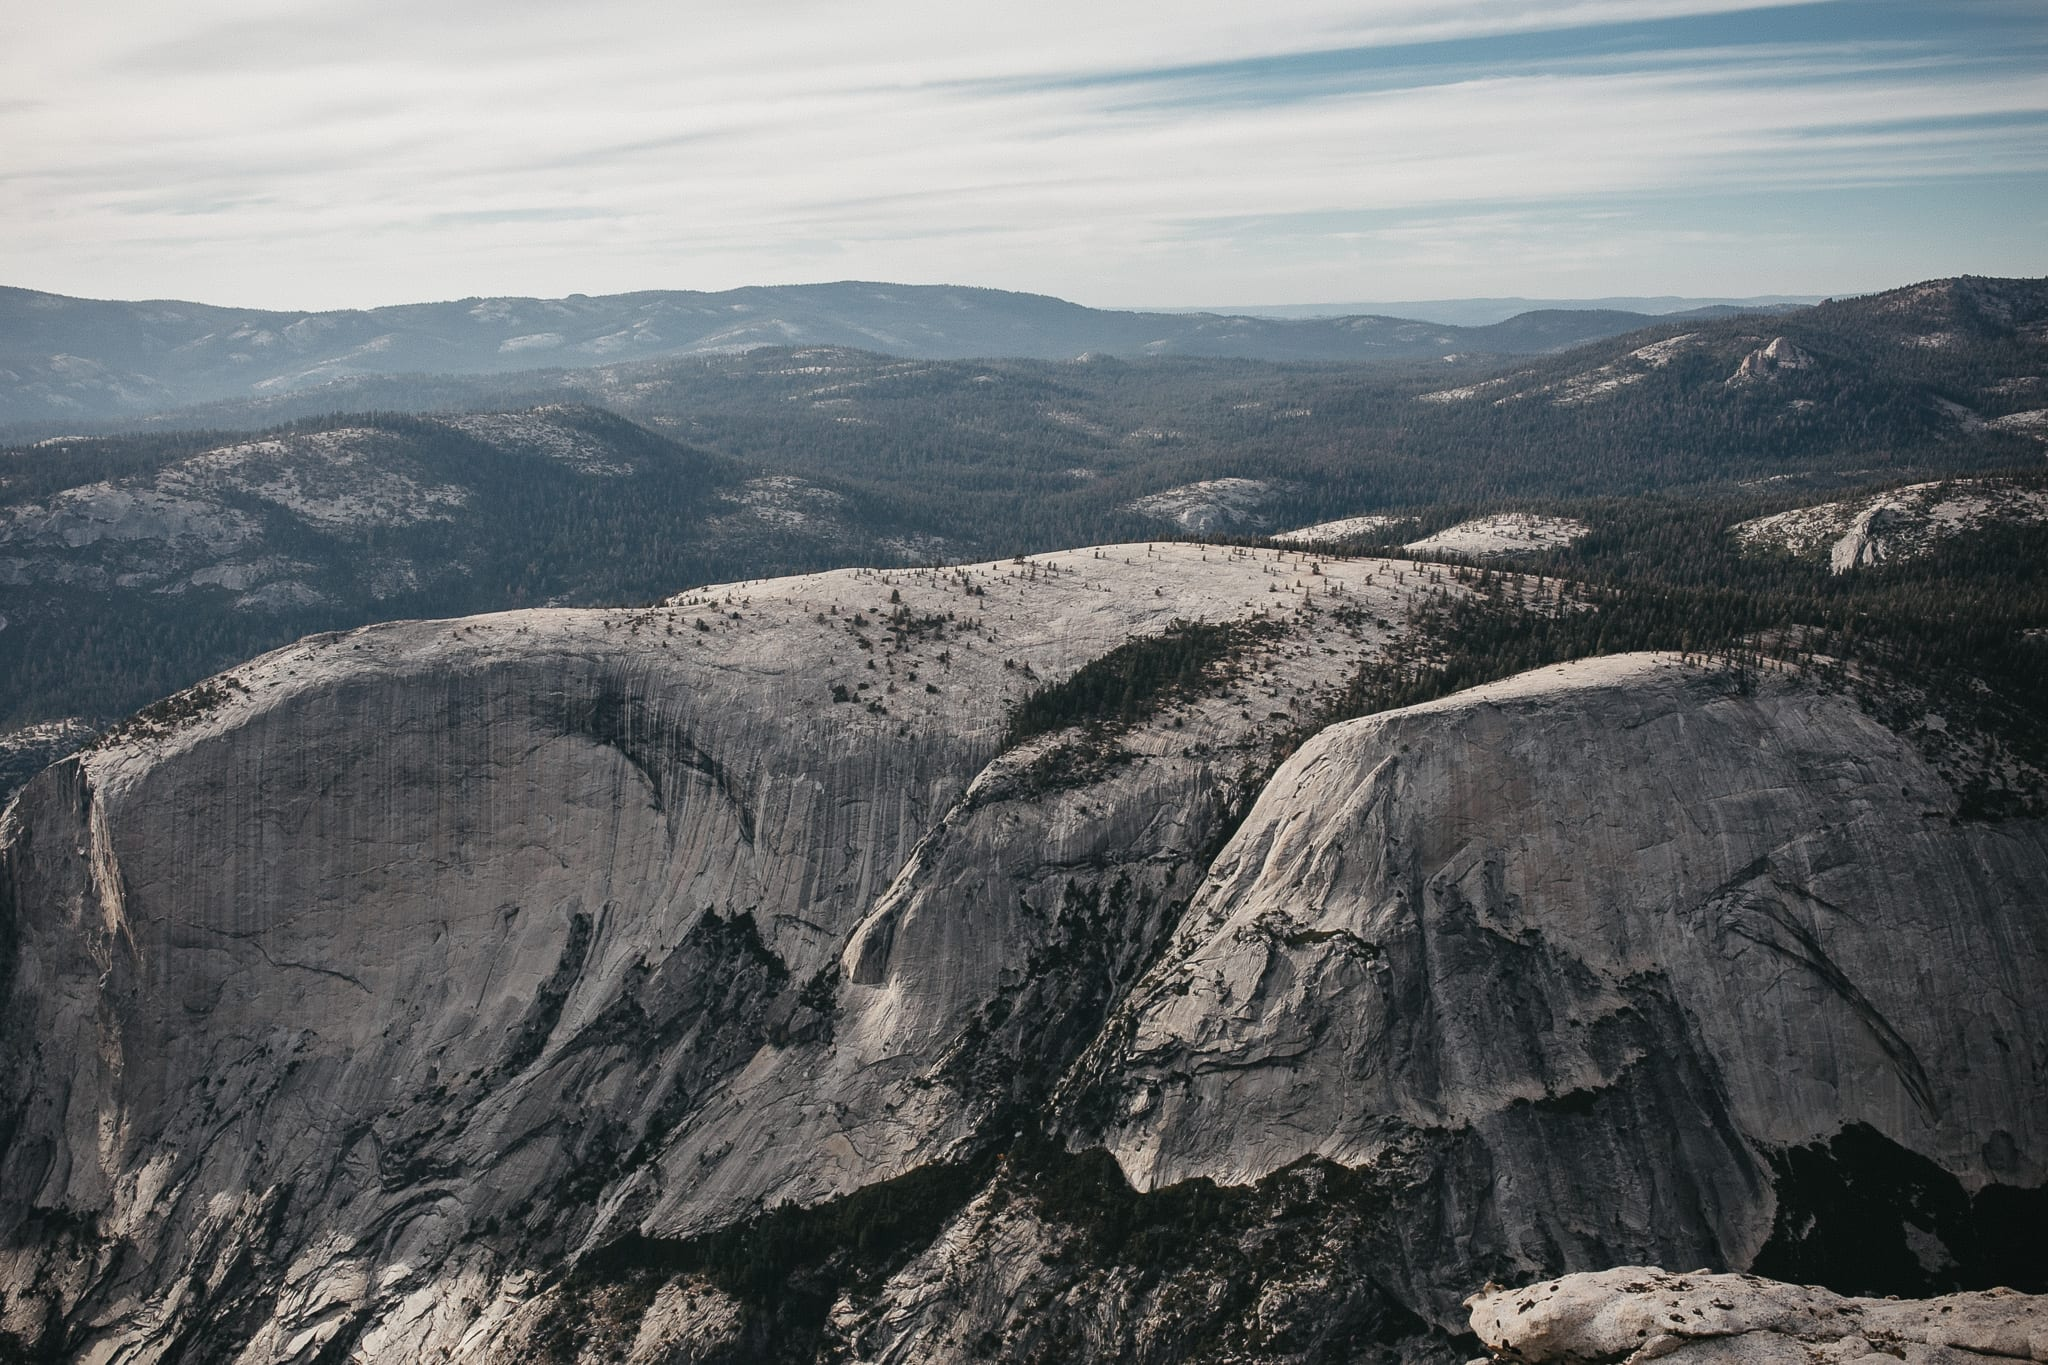 clouds-rest-yosemite-california-engagement-lifestyle-adventure-photographer-29